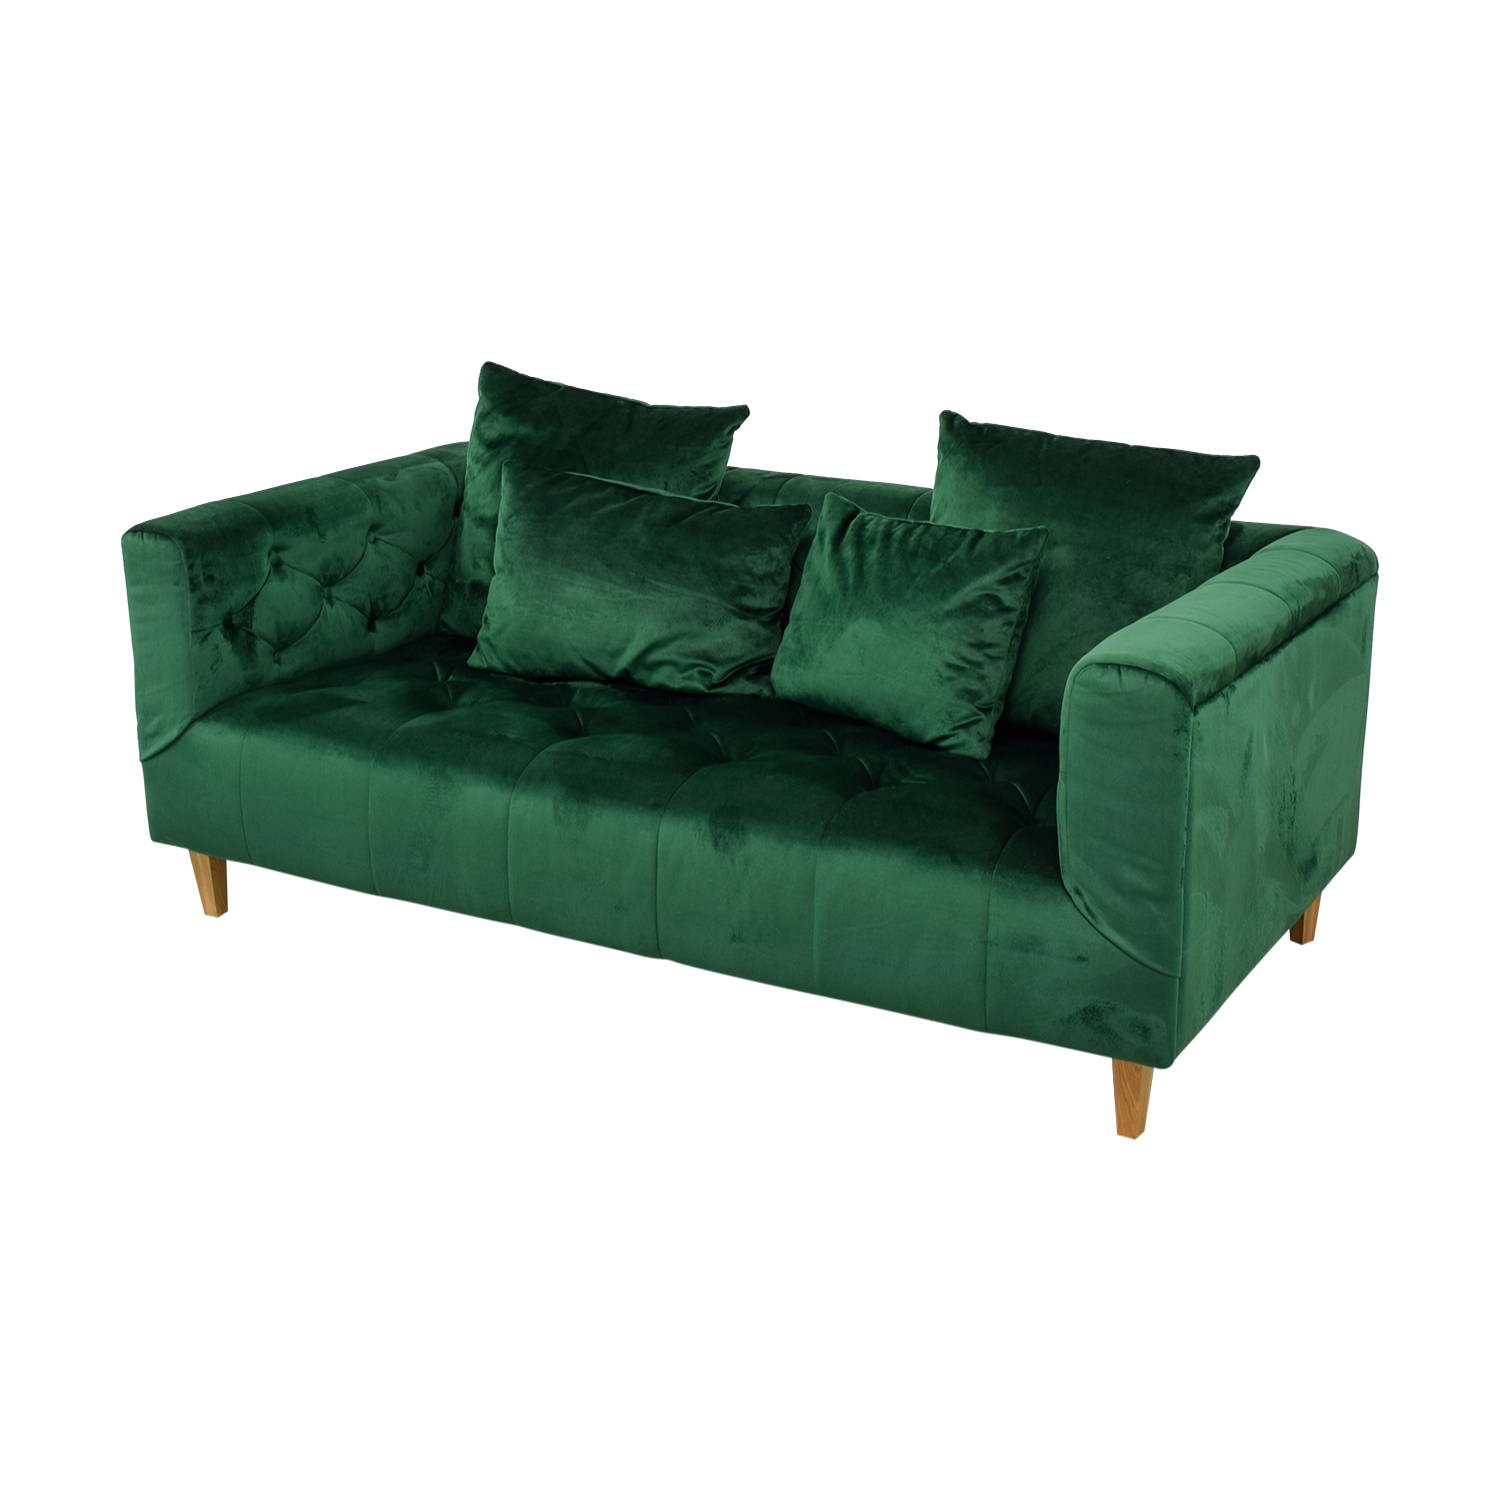 50% OFF - Ms. Chesterfield Green Tufted Sofa / Sofas